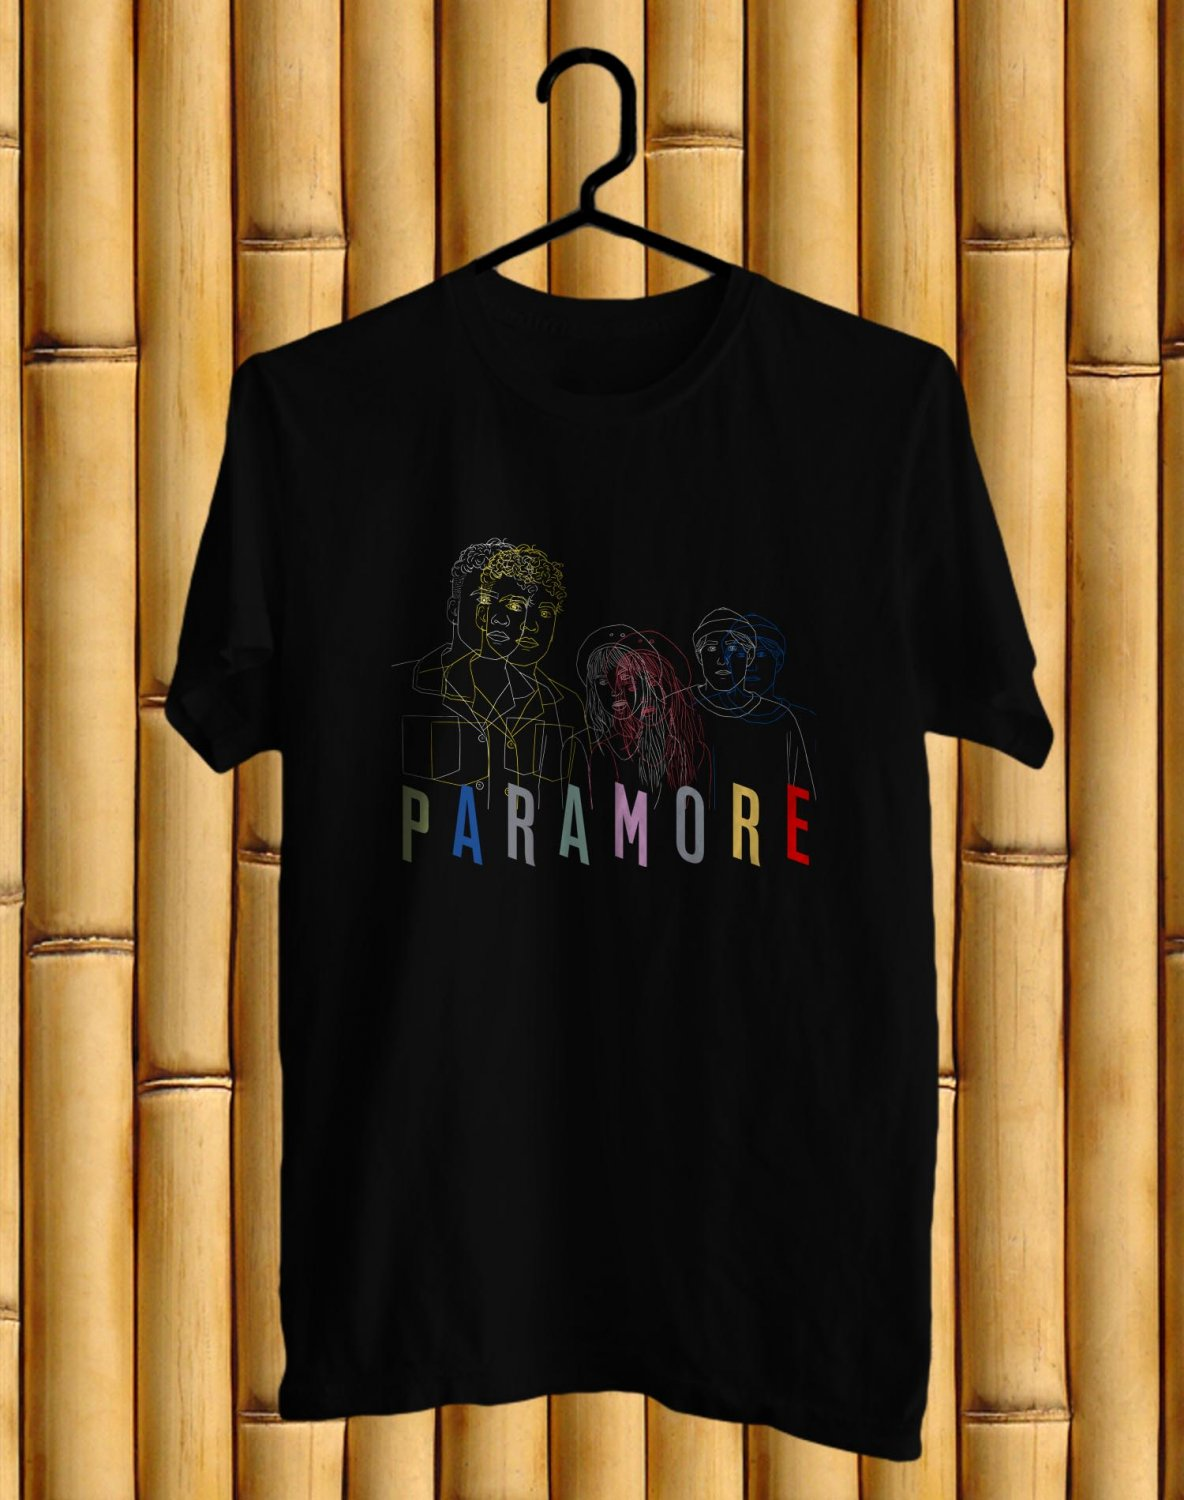 Paramore After Laughter New Album Tour 2017 Black Tee's Front Side by Complexart